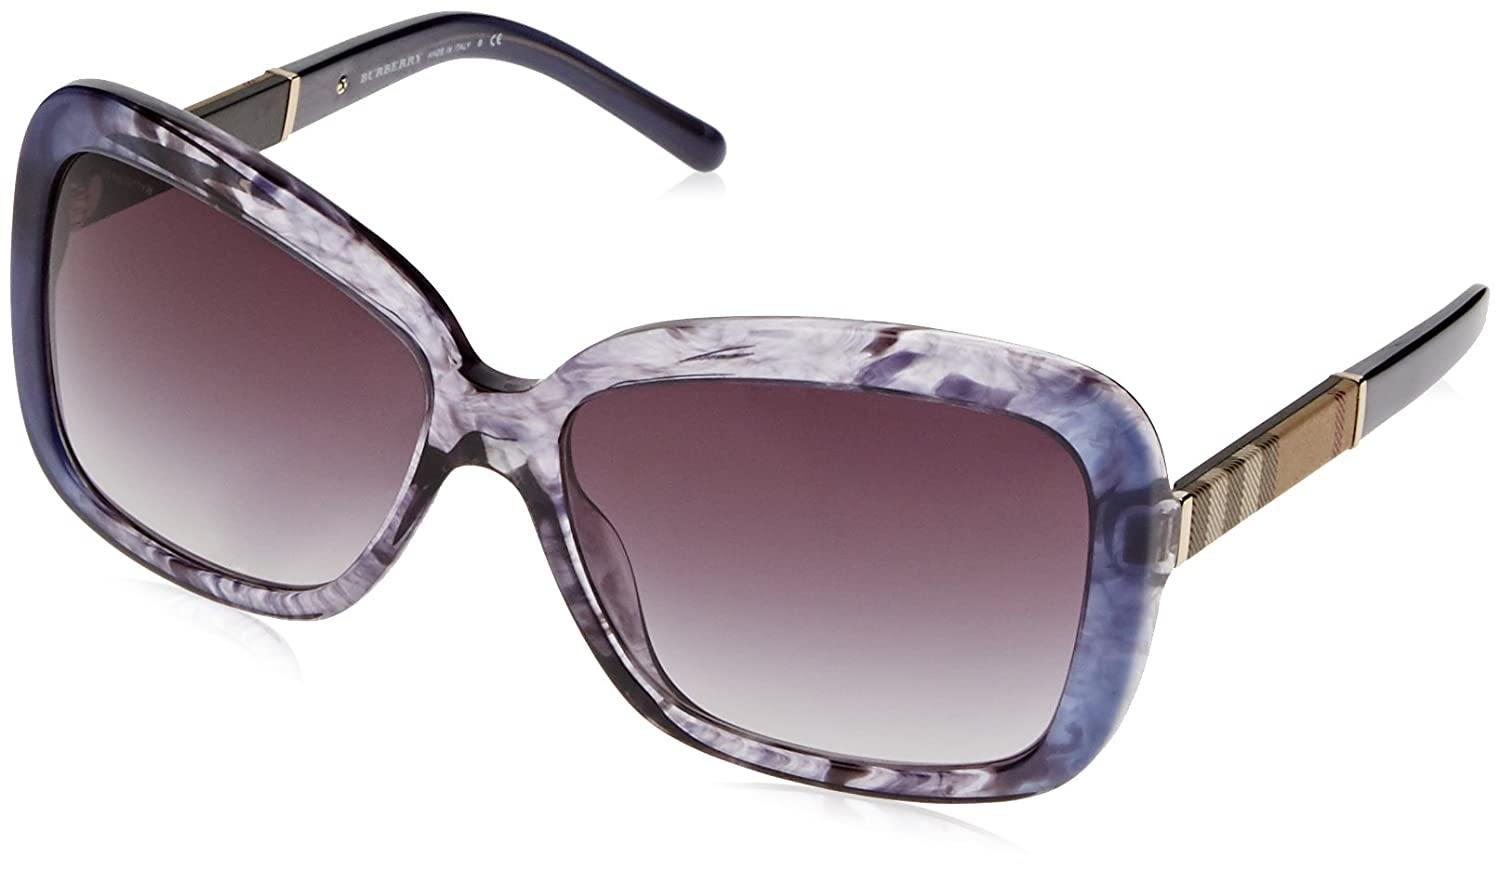 b0d0bf478f4 Amazon.com  Burberry BE4173 300111 Black BE4173 Rectangle Sunglasses Lens  Category 2 Size 5  Burberry  Clothing